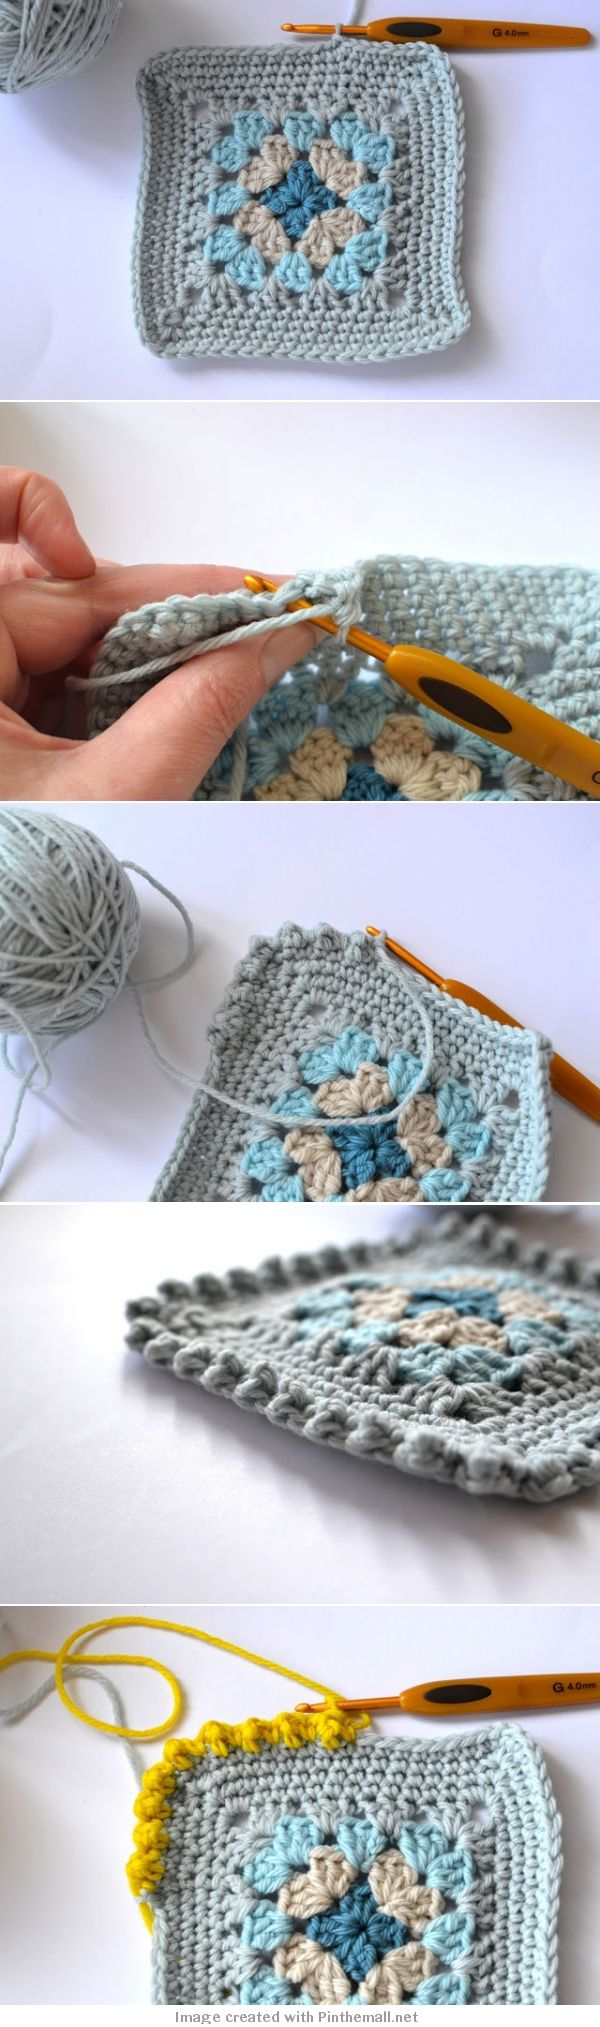 #Crochet #tutorial - Bobble Border Tutorial - Great for a square edging or to use as a border on many other projects - from Dover & Madden.